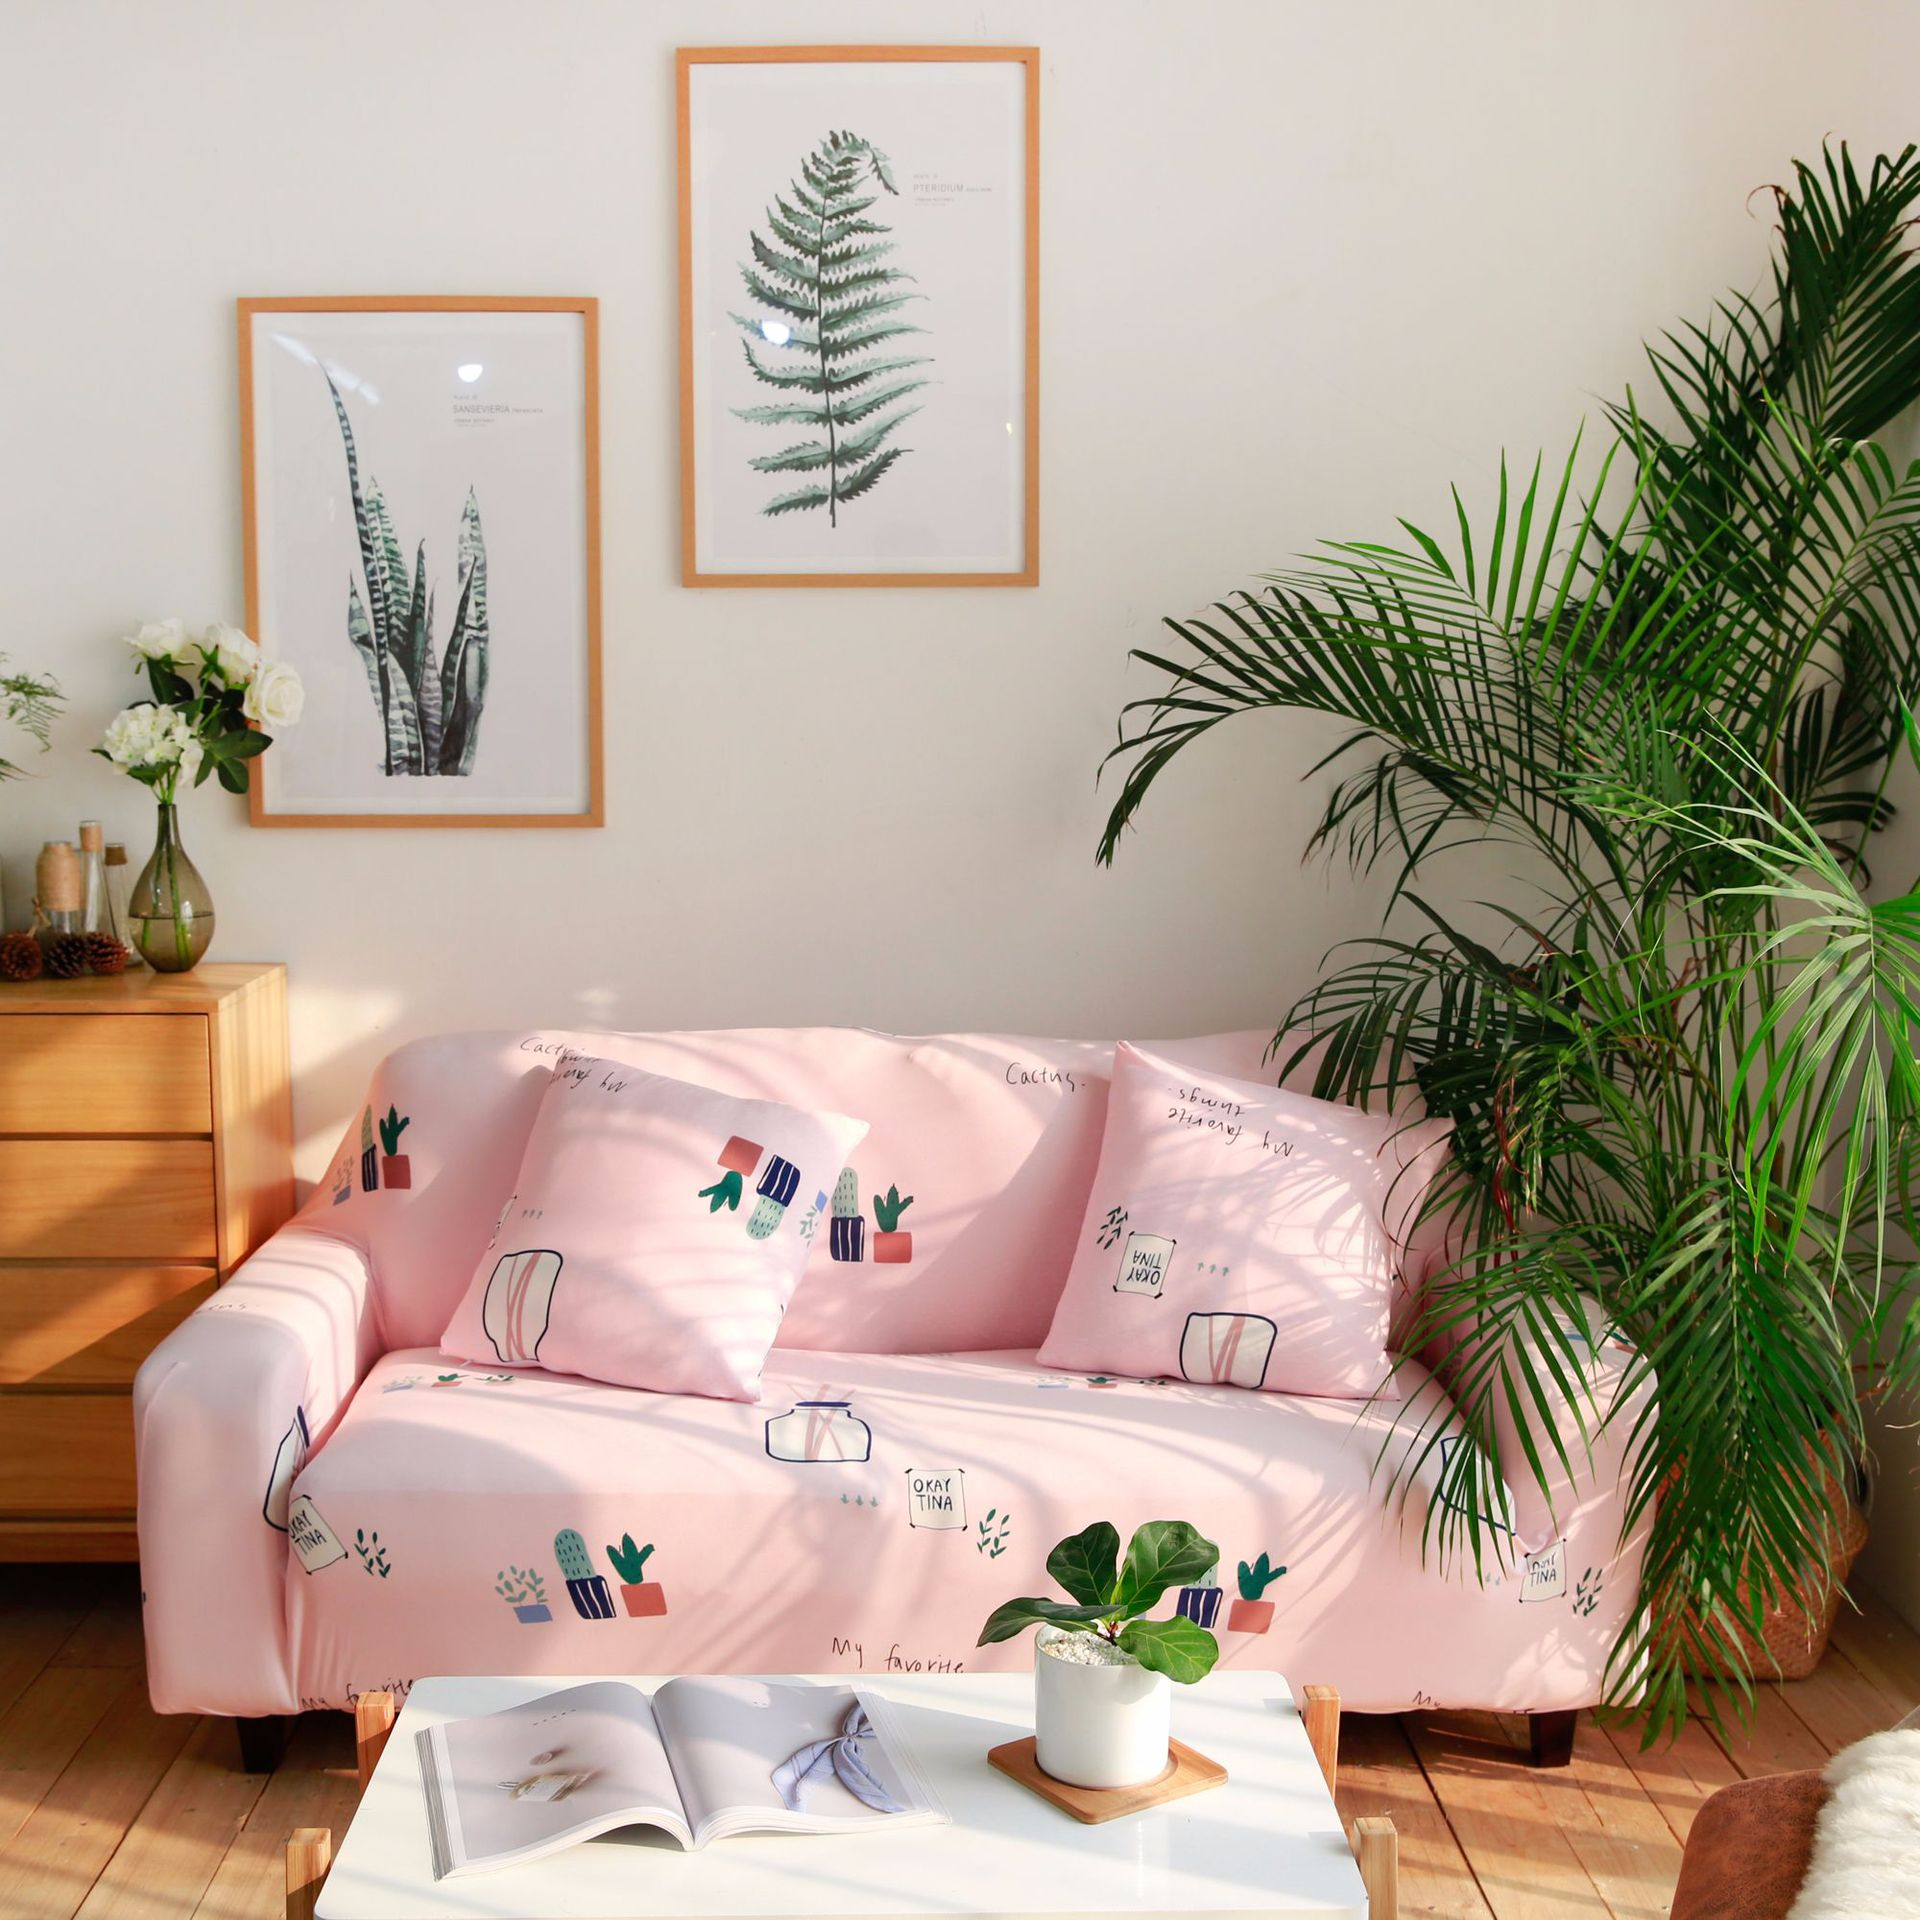 Super elastic stretchable sofa cover (Buy two free shipping)